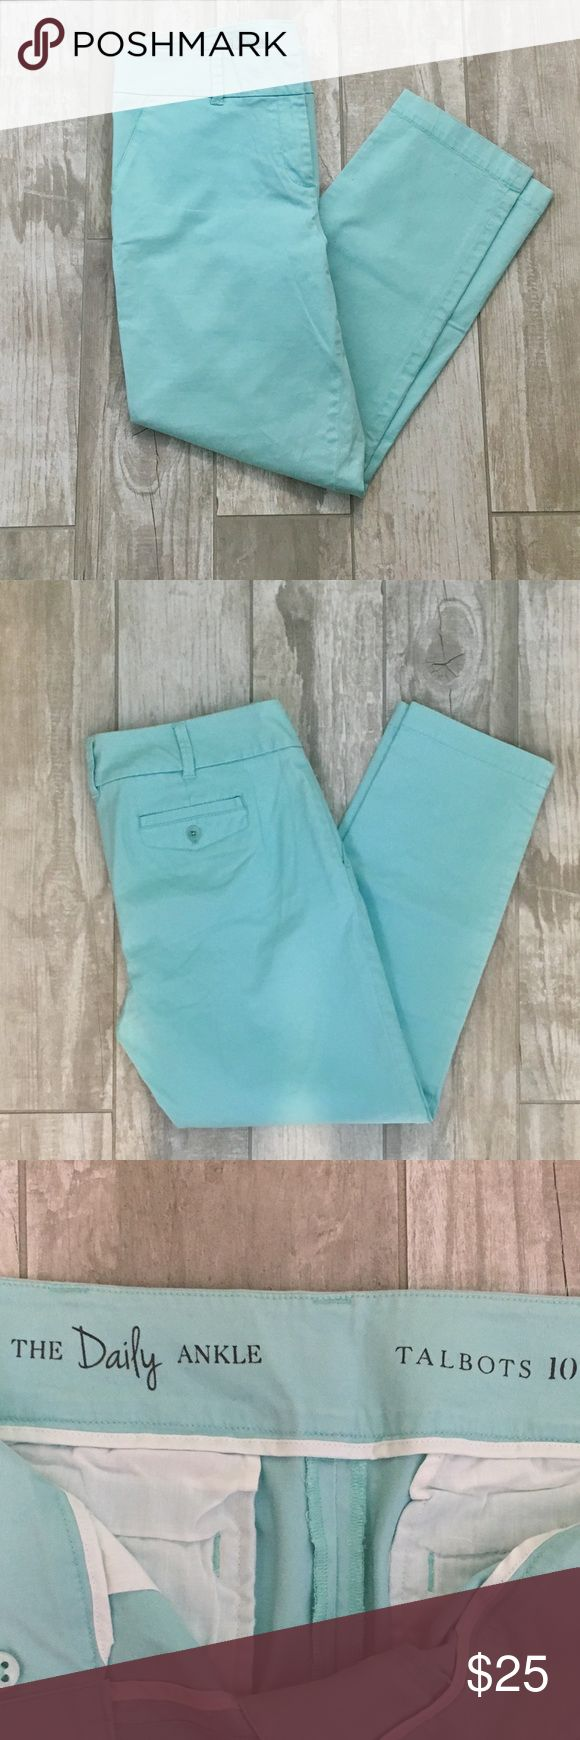 Talbots, sz 10,  Daily Ankle mint green pants Light mint green/blue ankle length pants. Only worn once so they are in excellent condition! These are size 10 and they fit well in the hips for any curvy shaped body types. Goes well with a basic top or can be dressed up with a blazer and heels. Talbots Pants Ankle & Cropped